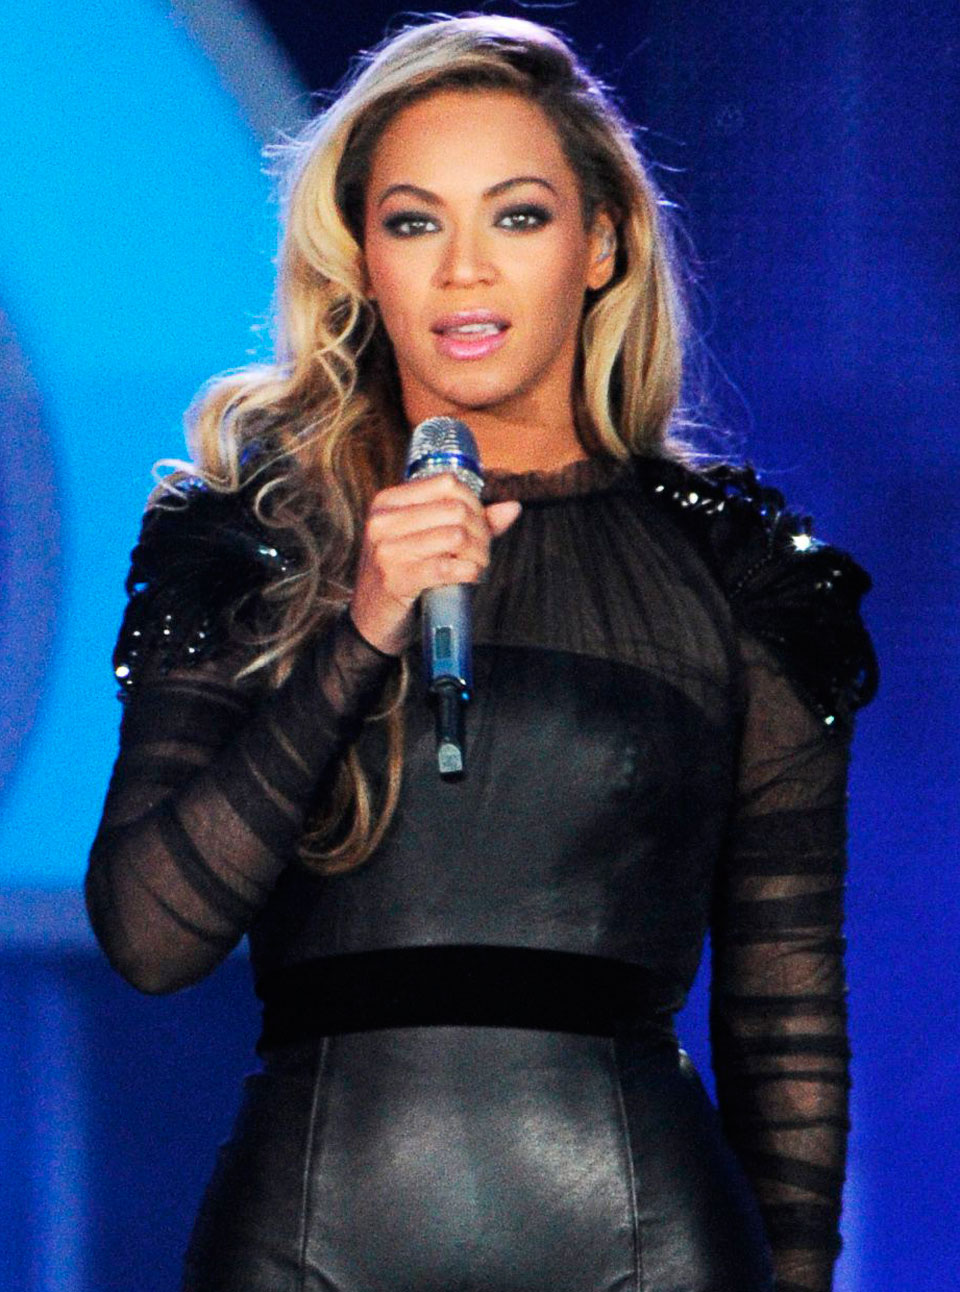 Beyoncé Is Absolutely Not Pregnant', Her Team Finally Confirms